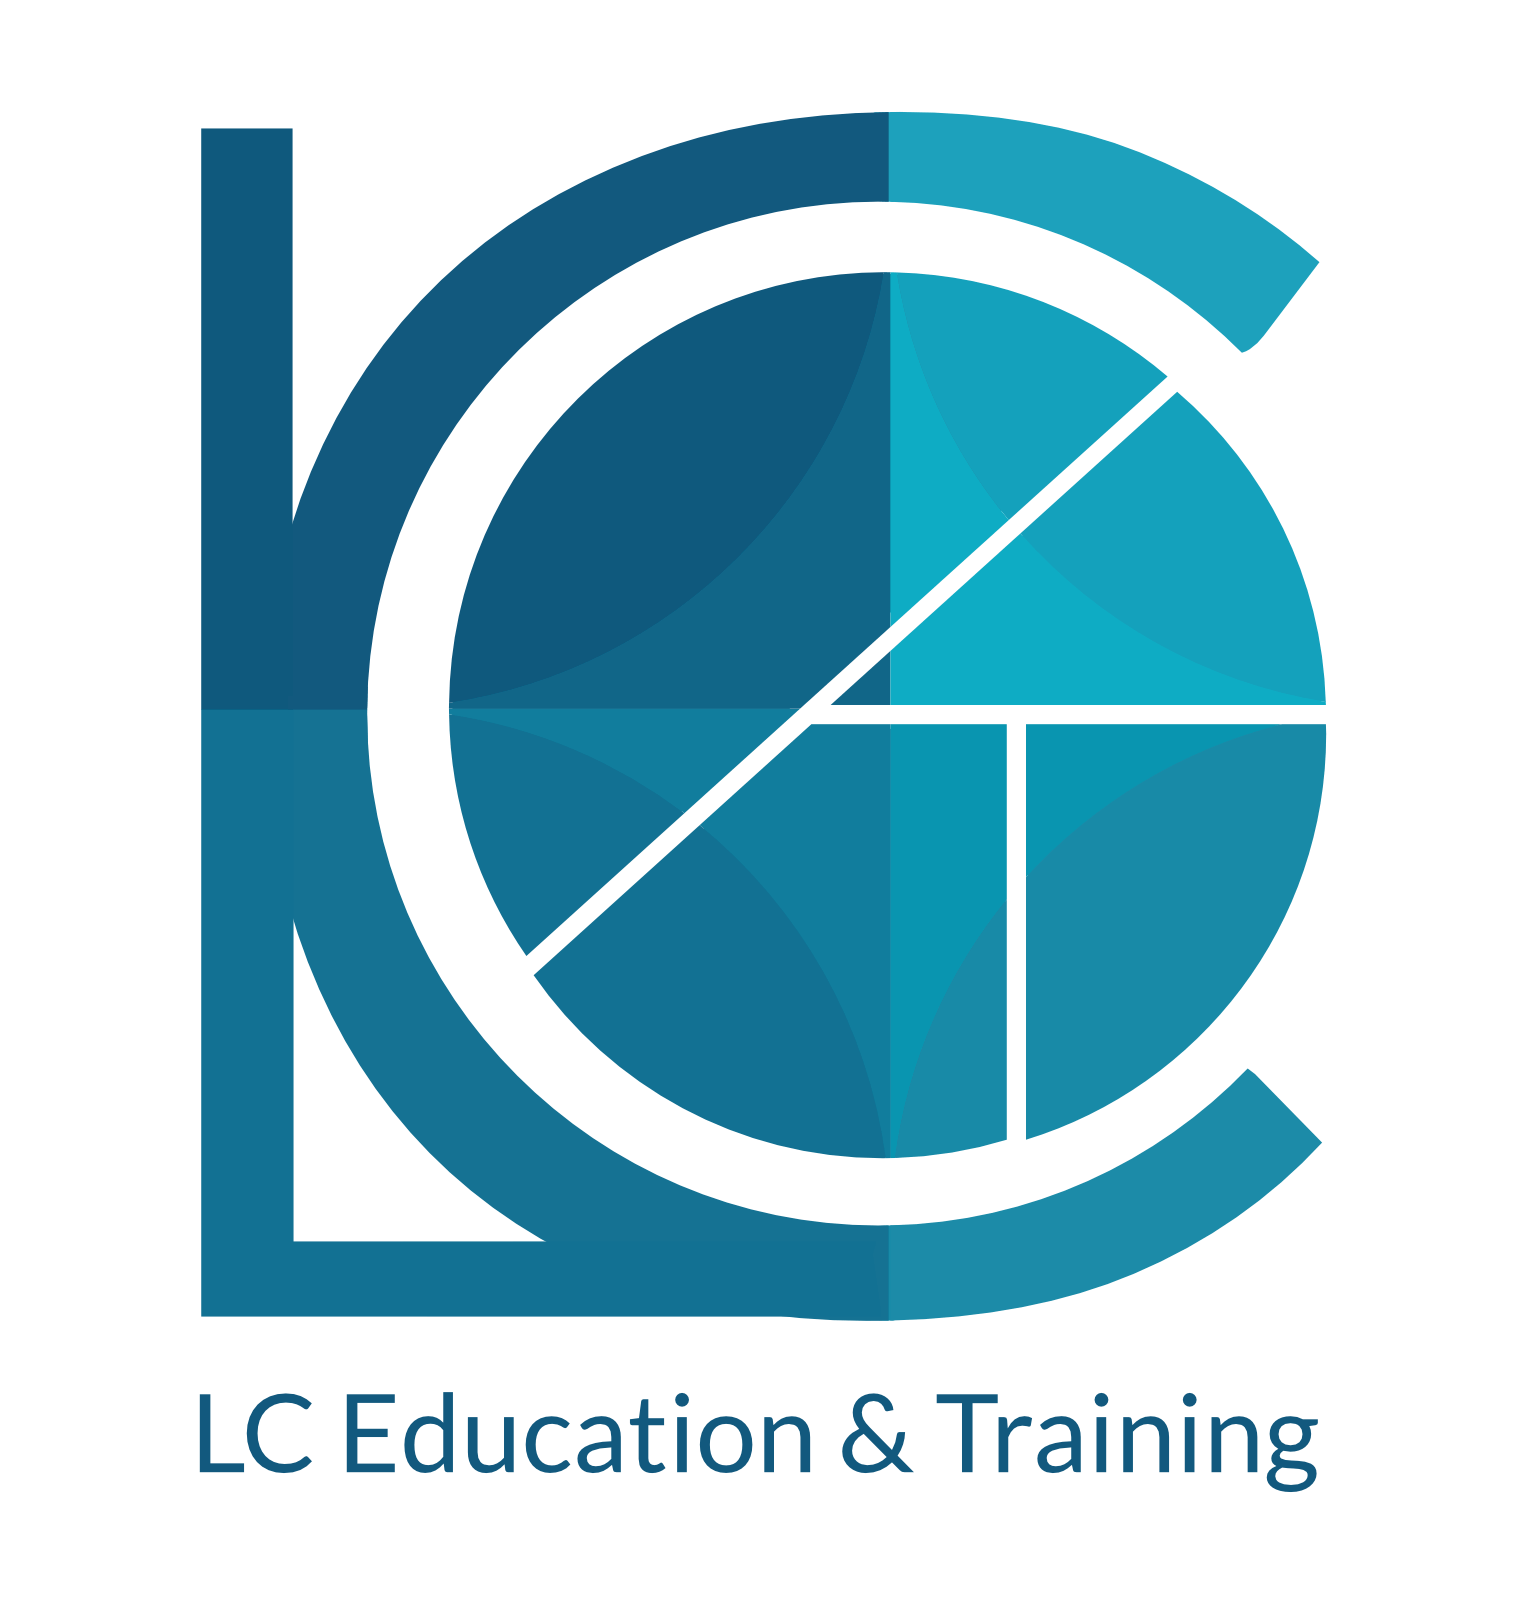 LC Education and Training